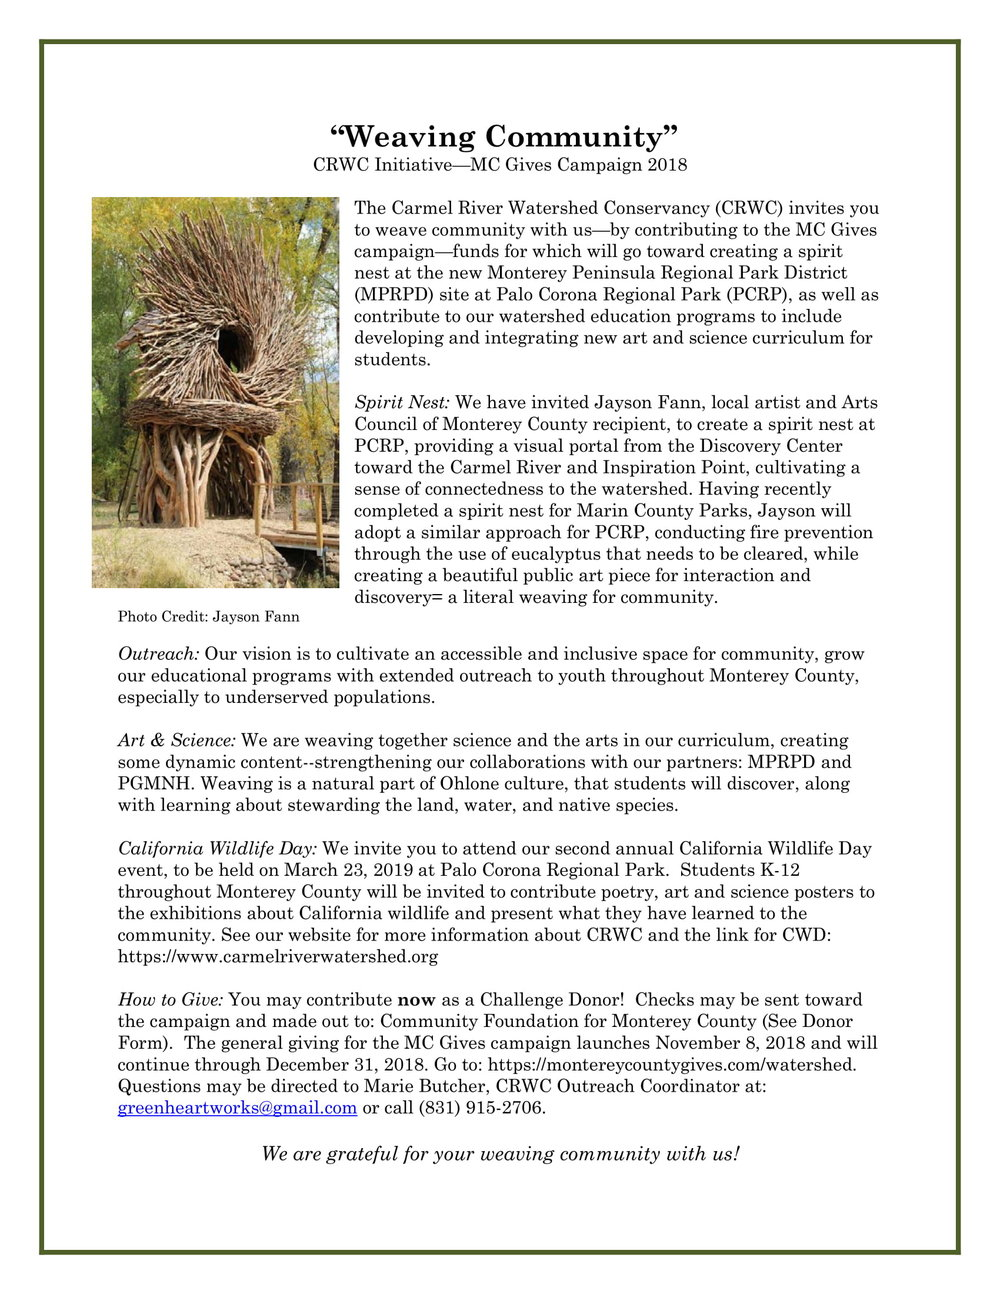 Weaving Community Campaign_PDF copy-1.jpg